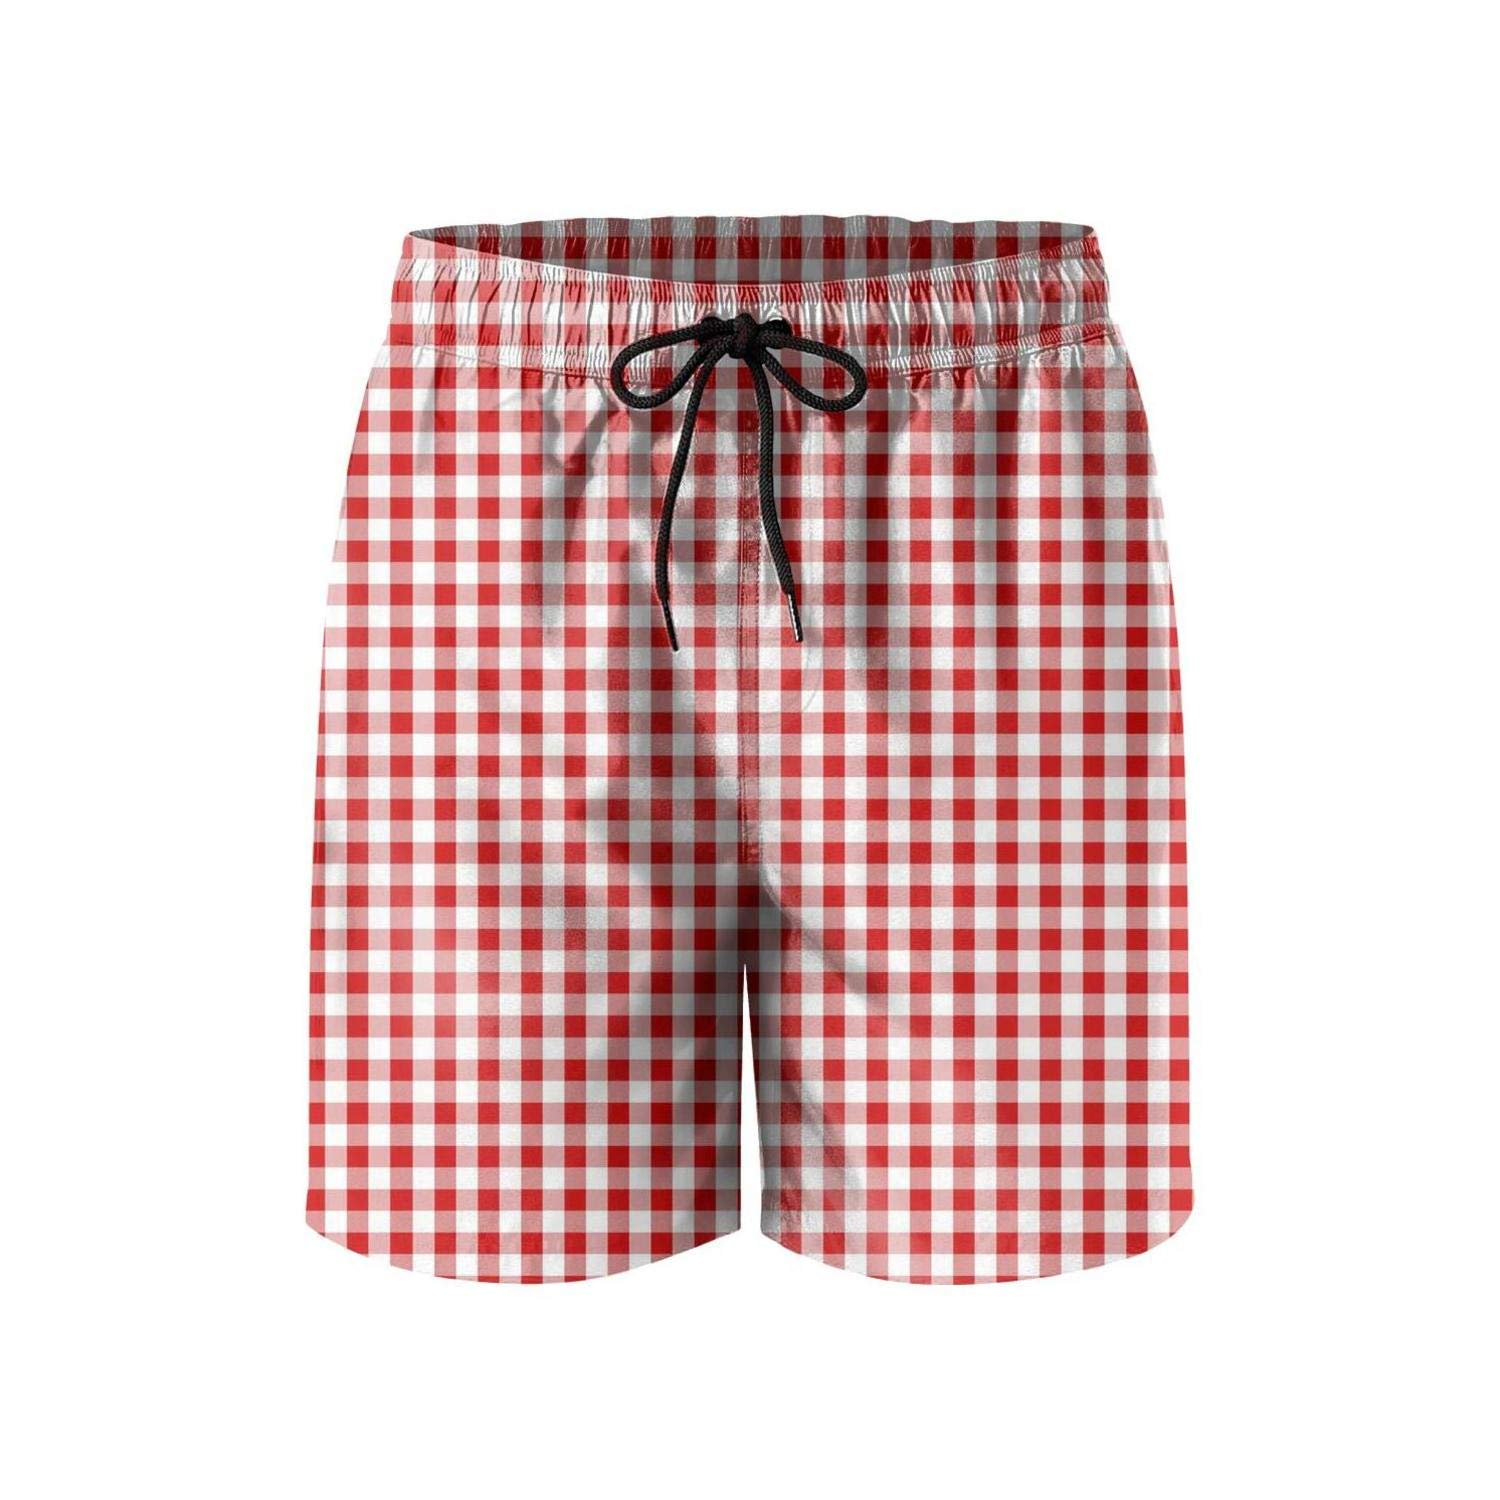 Mens Core Slim Fit Absorbent Board Short-Plaid Printing Delicate red Style Beach Shorts